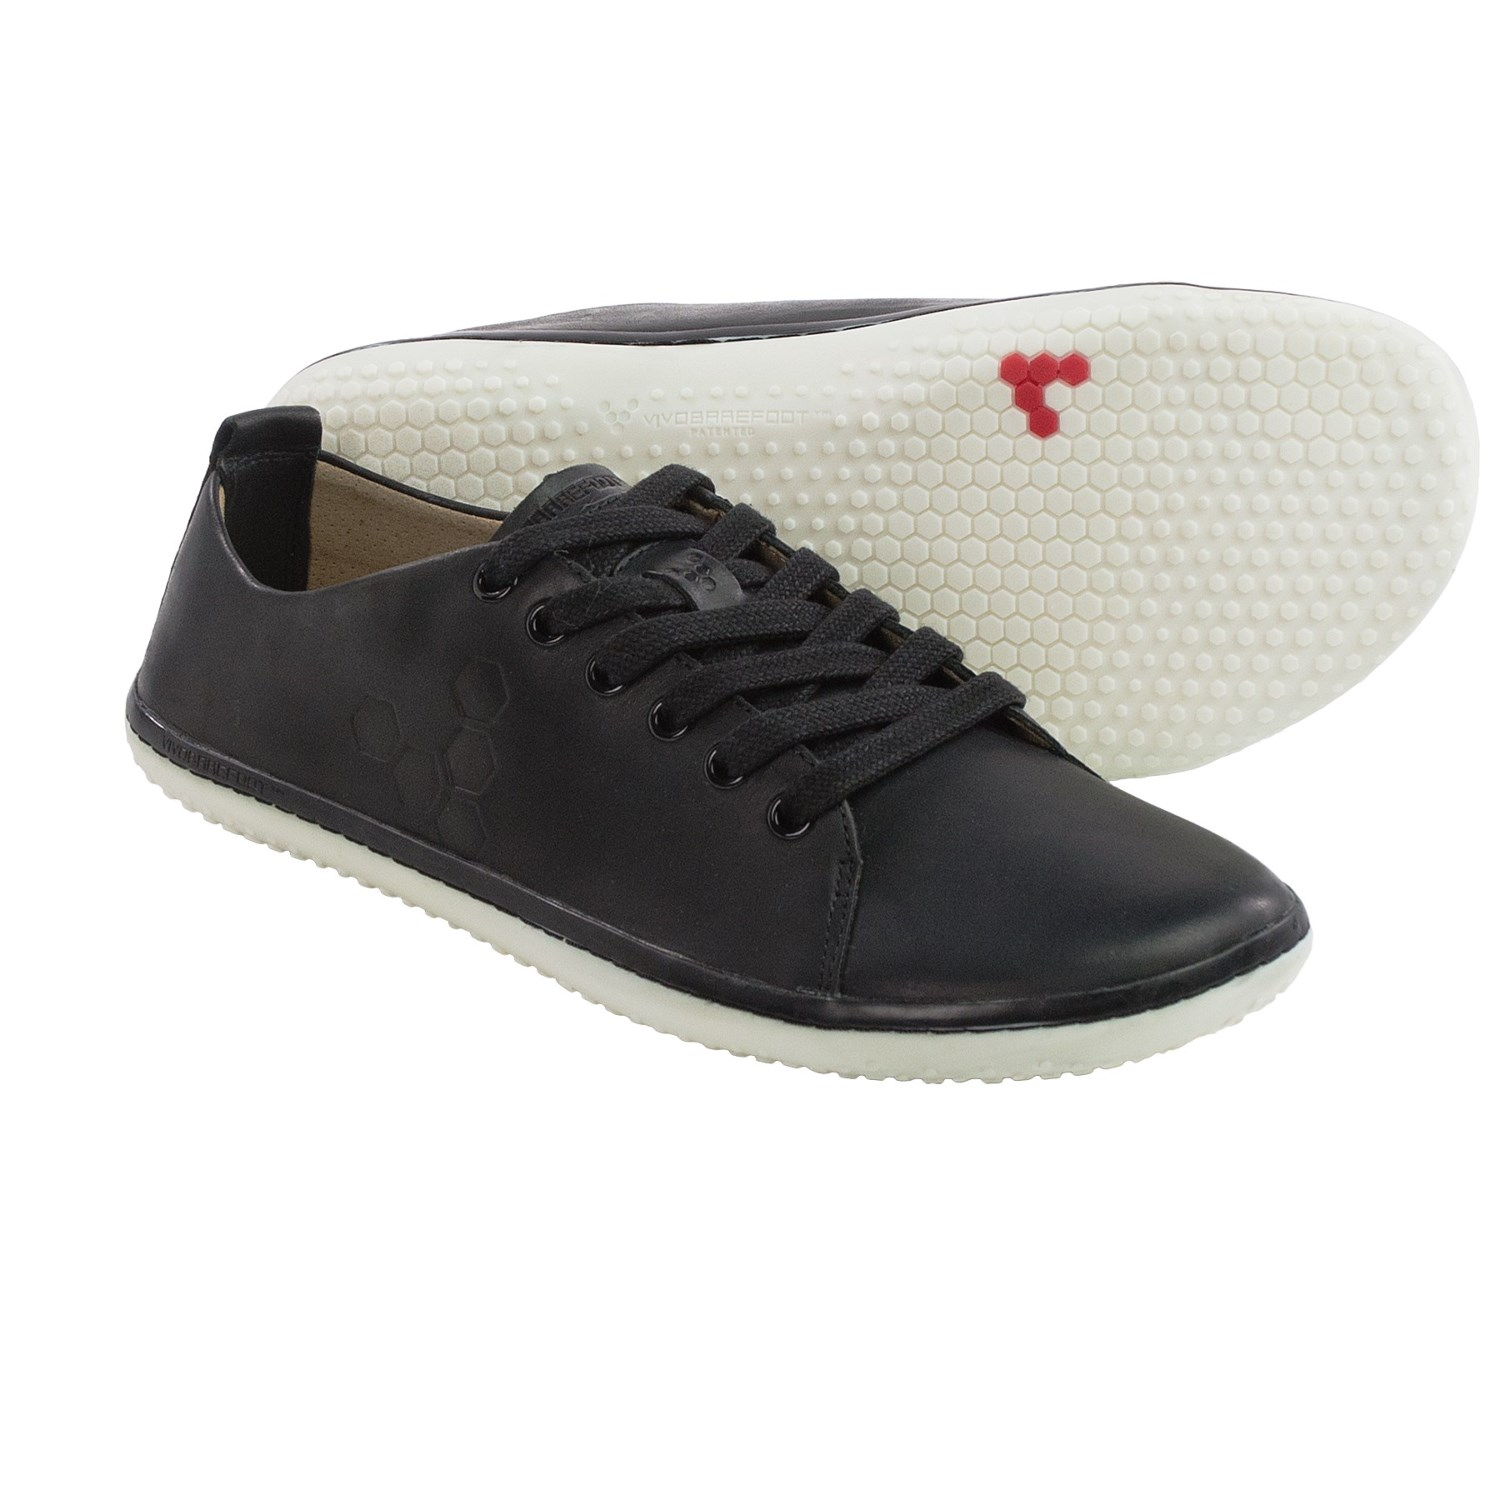 Vivobarefoot Freud 2 Leather Shoes For Men 9977n Save 50